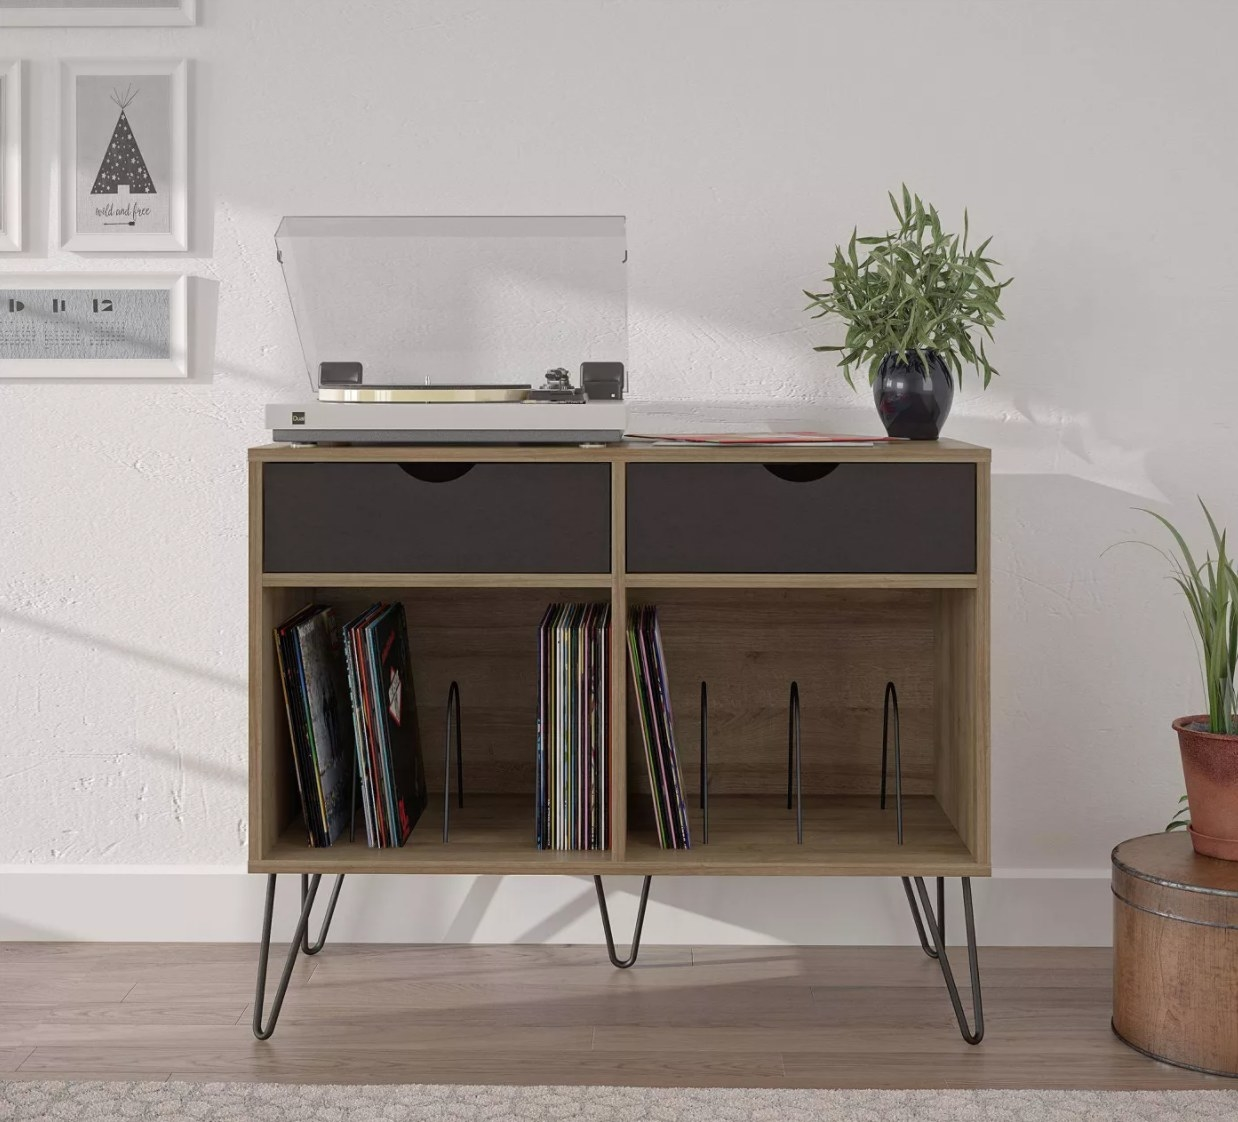 A wooden turntable stand with hairpin legs, drawers, and space for vinyl records